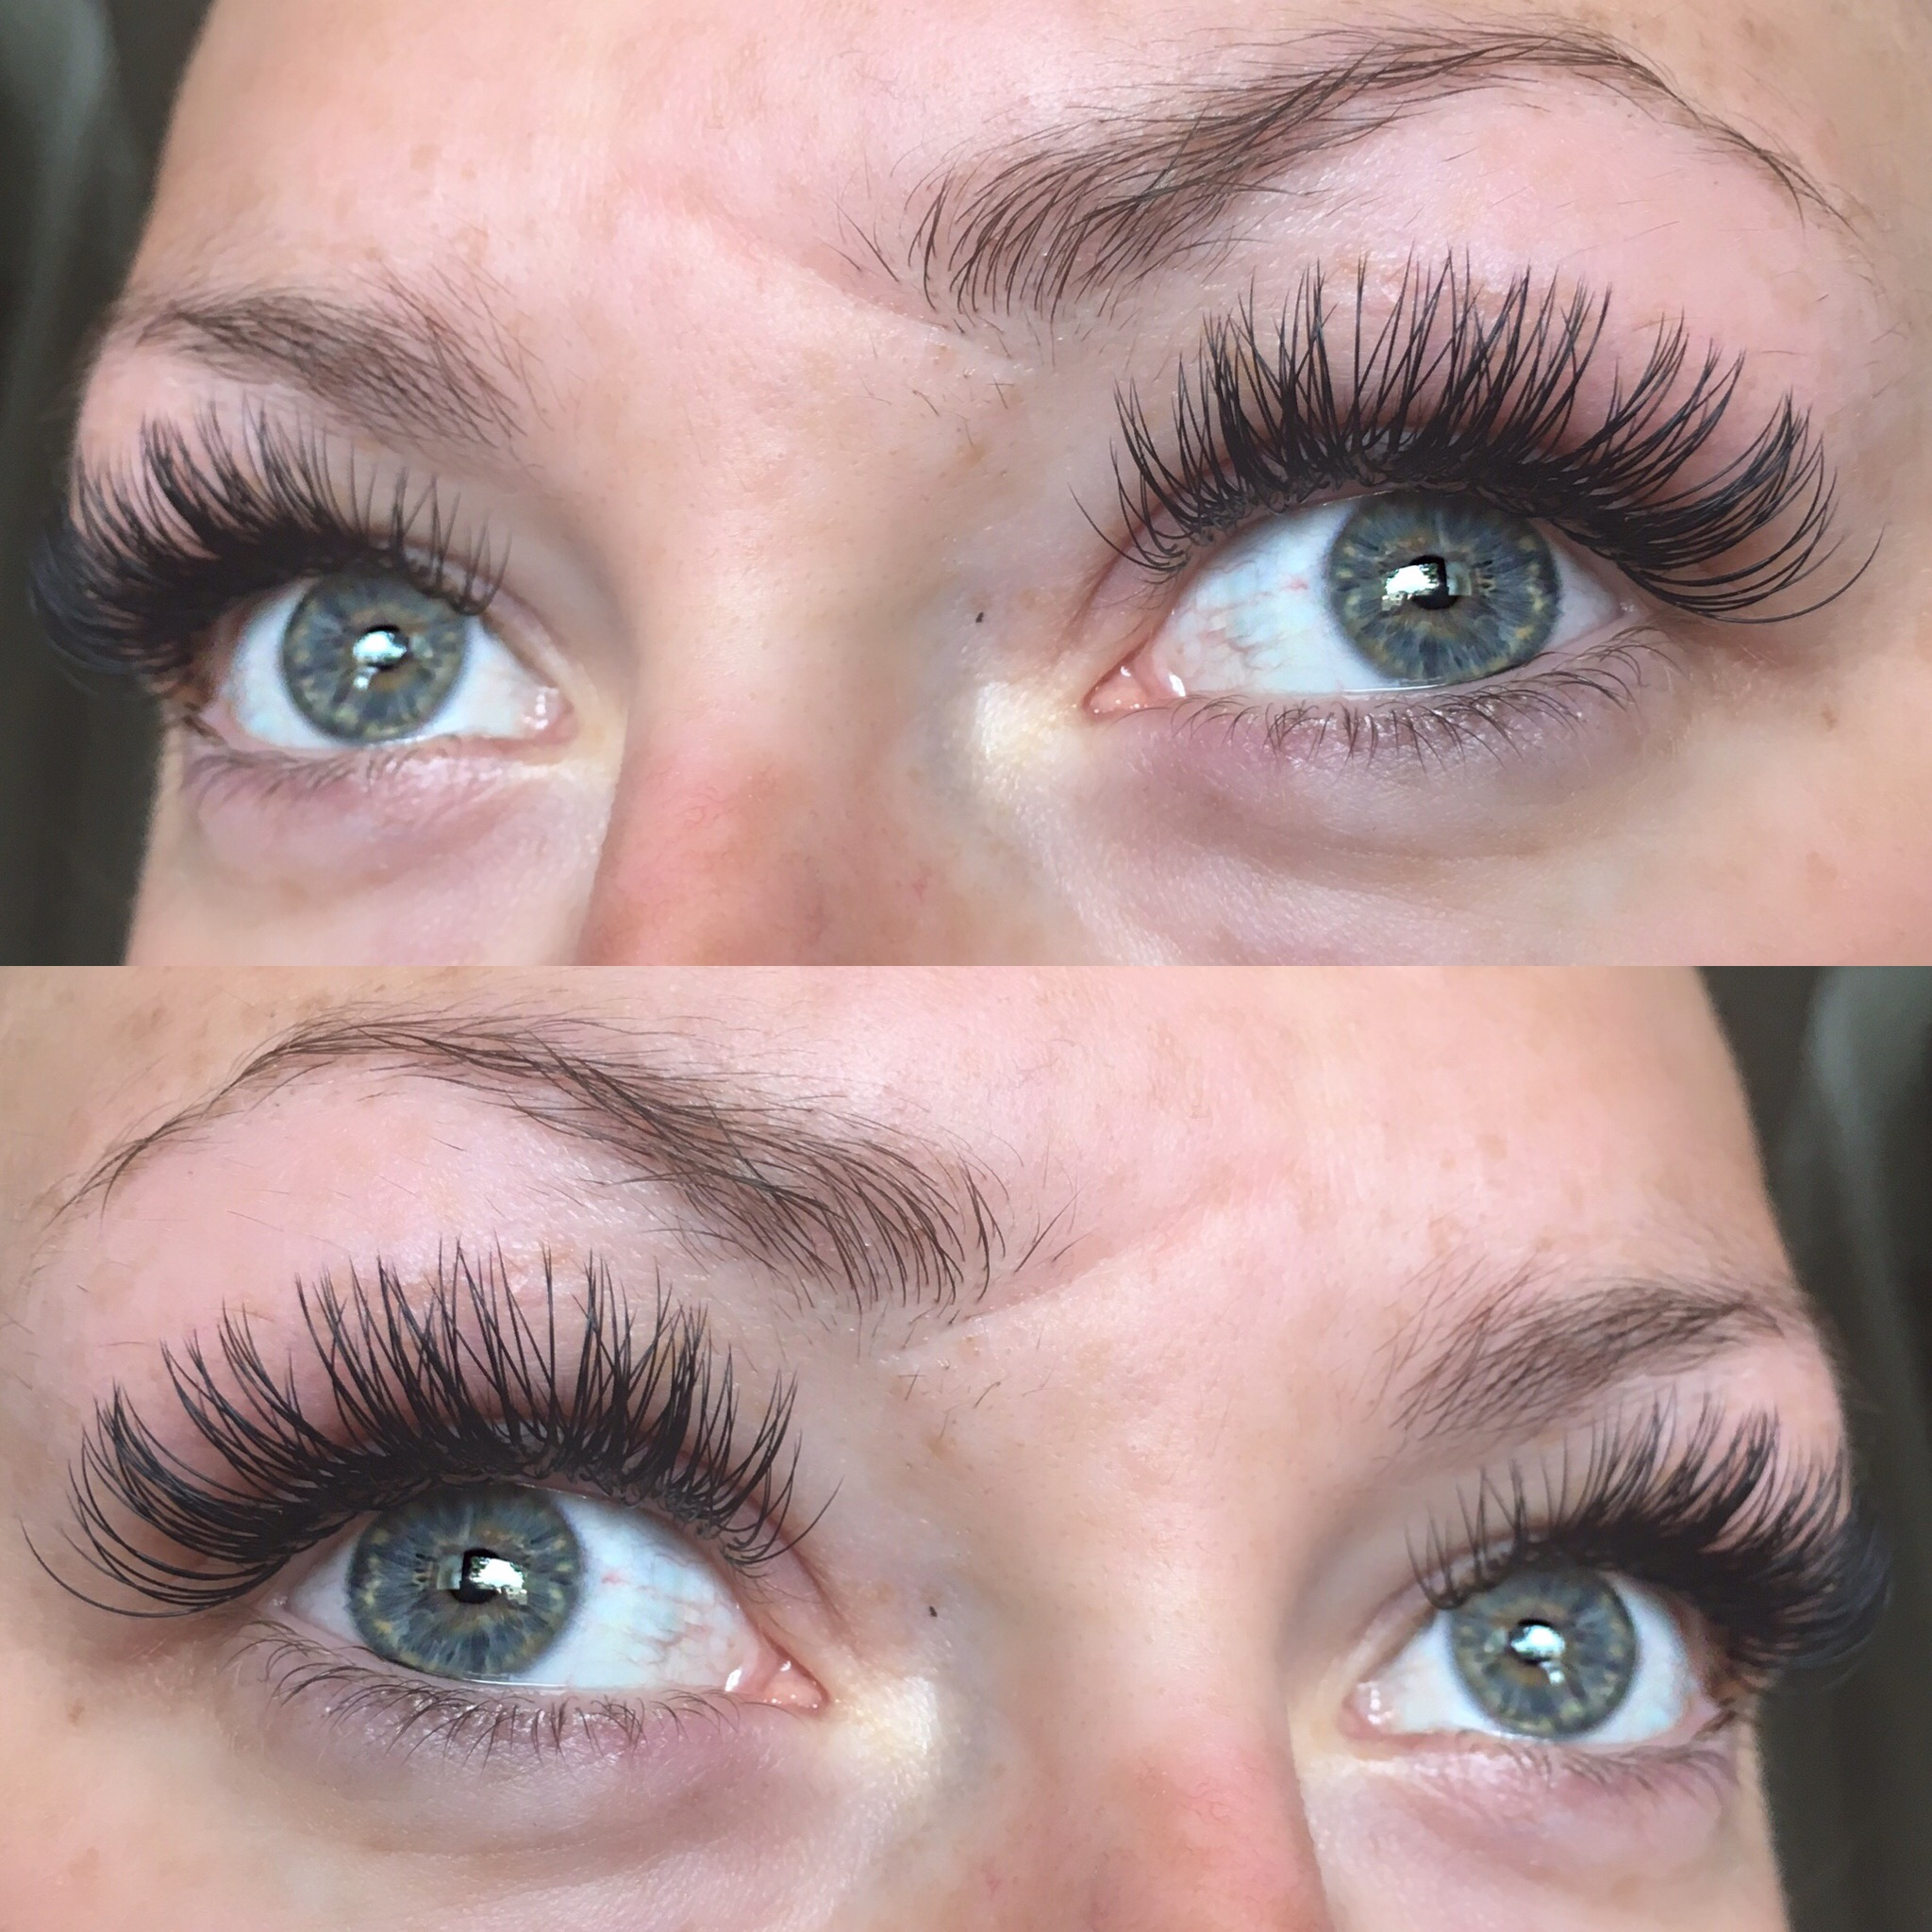 d1a262761db If you are thinking about having semi-permanent eyelashes for the first  time, here's my top 10 words of advice: